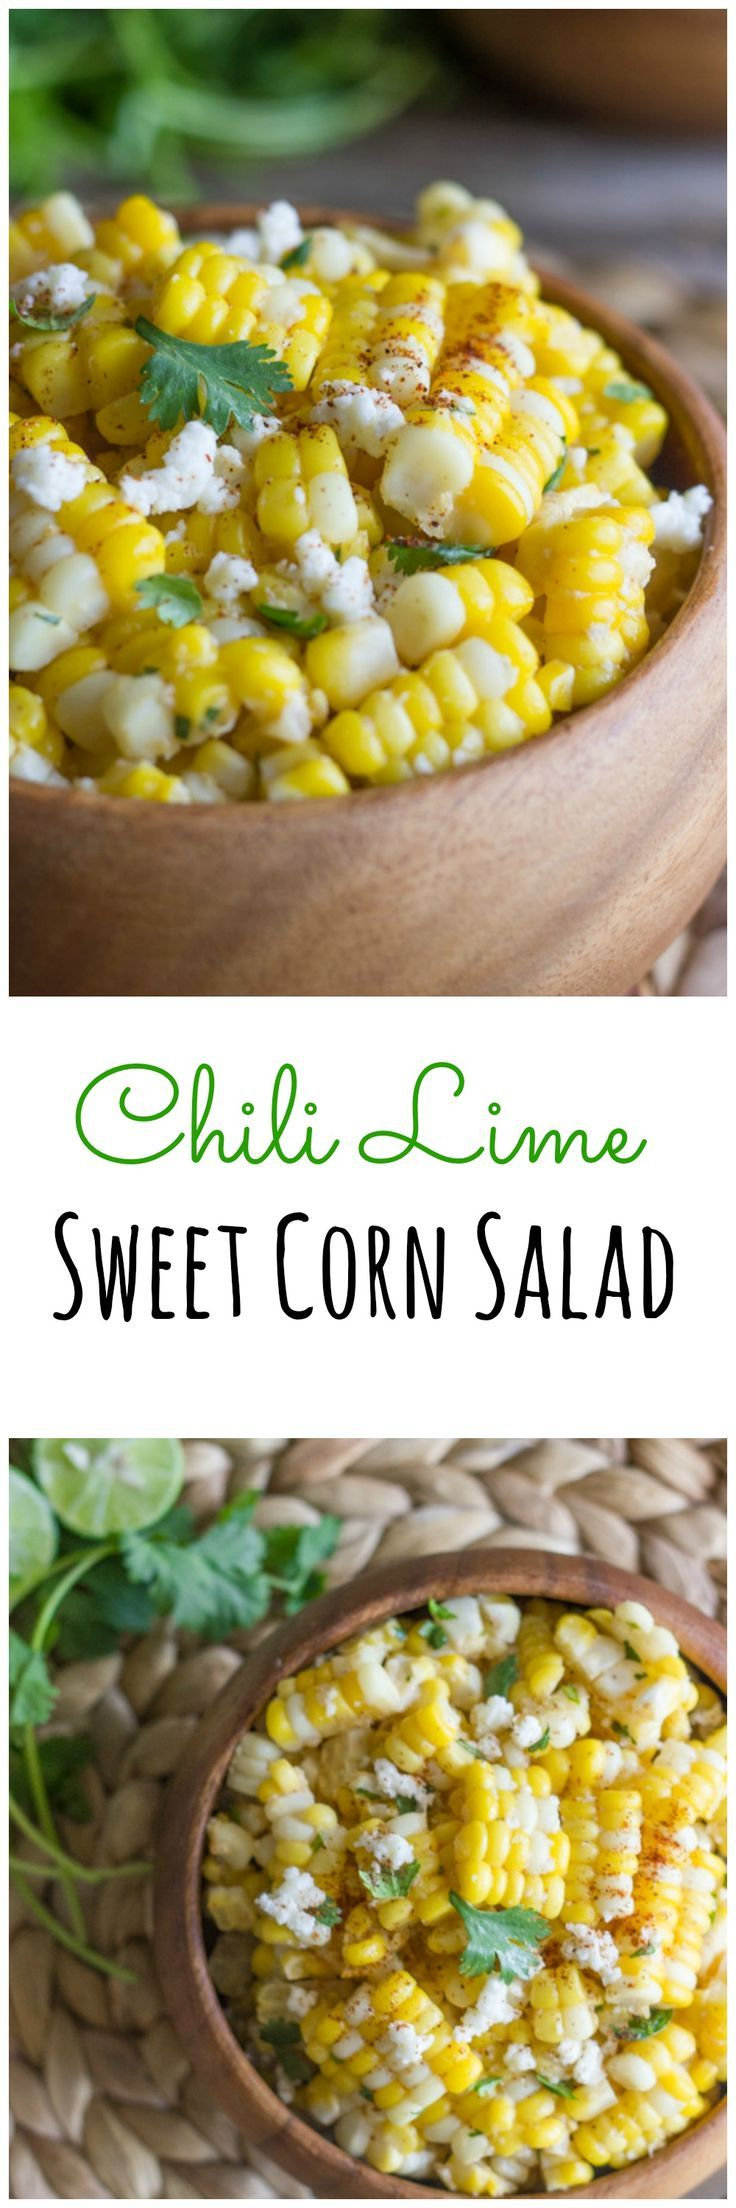 Chili Lime Sweet Corn Salad | Living Rich With Coupons